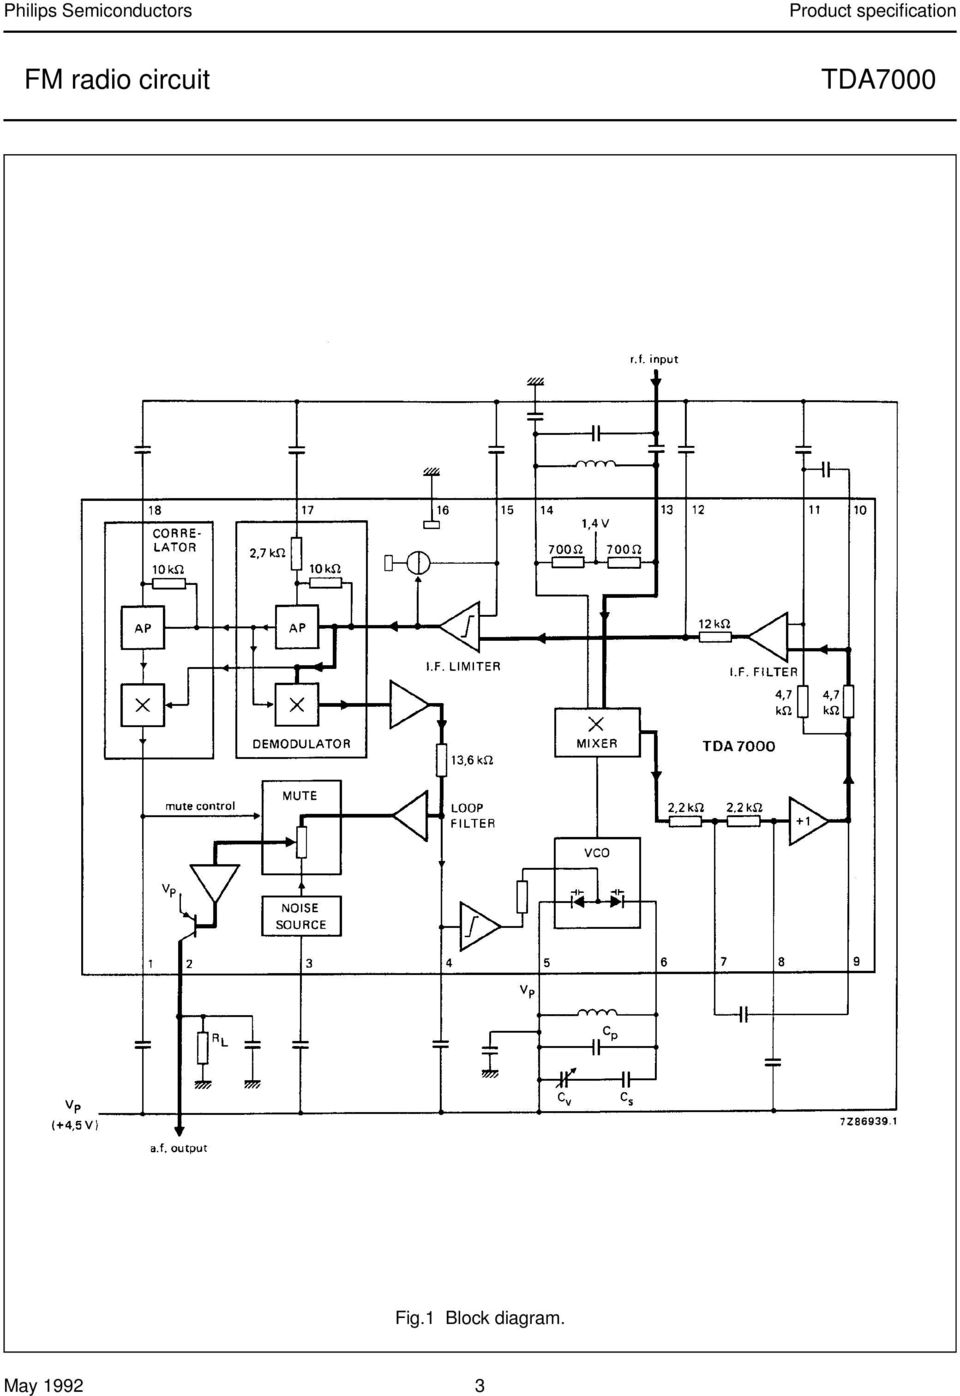 Integrated Circuits Data Sheet Tda7000 Fm Radio Circuit Product Diagram 4 Ratings Limiting Values In Accordance With The Absolute Maximum System Iec 134 Supply Voltage Pin 5 V P Max 12 Oscillator 6